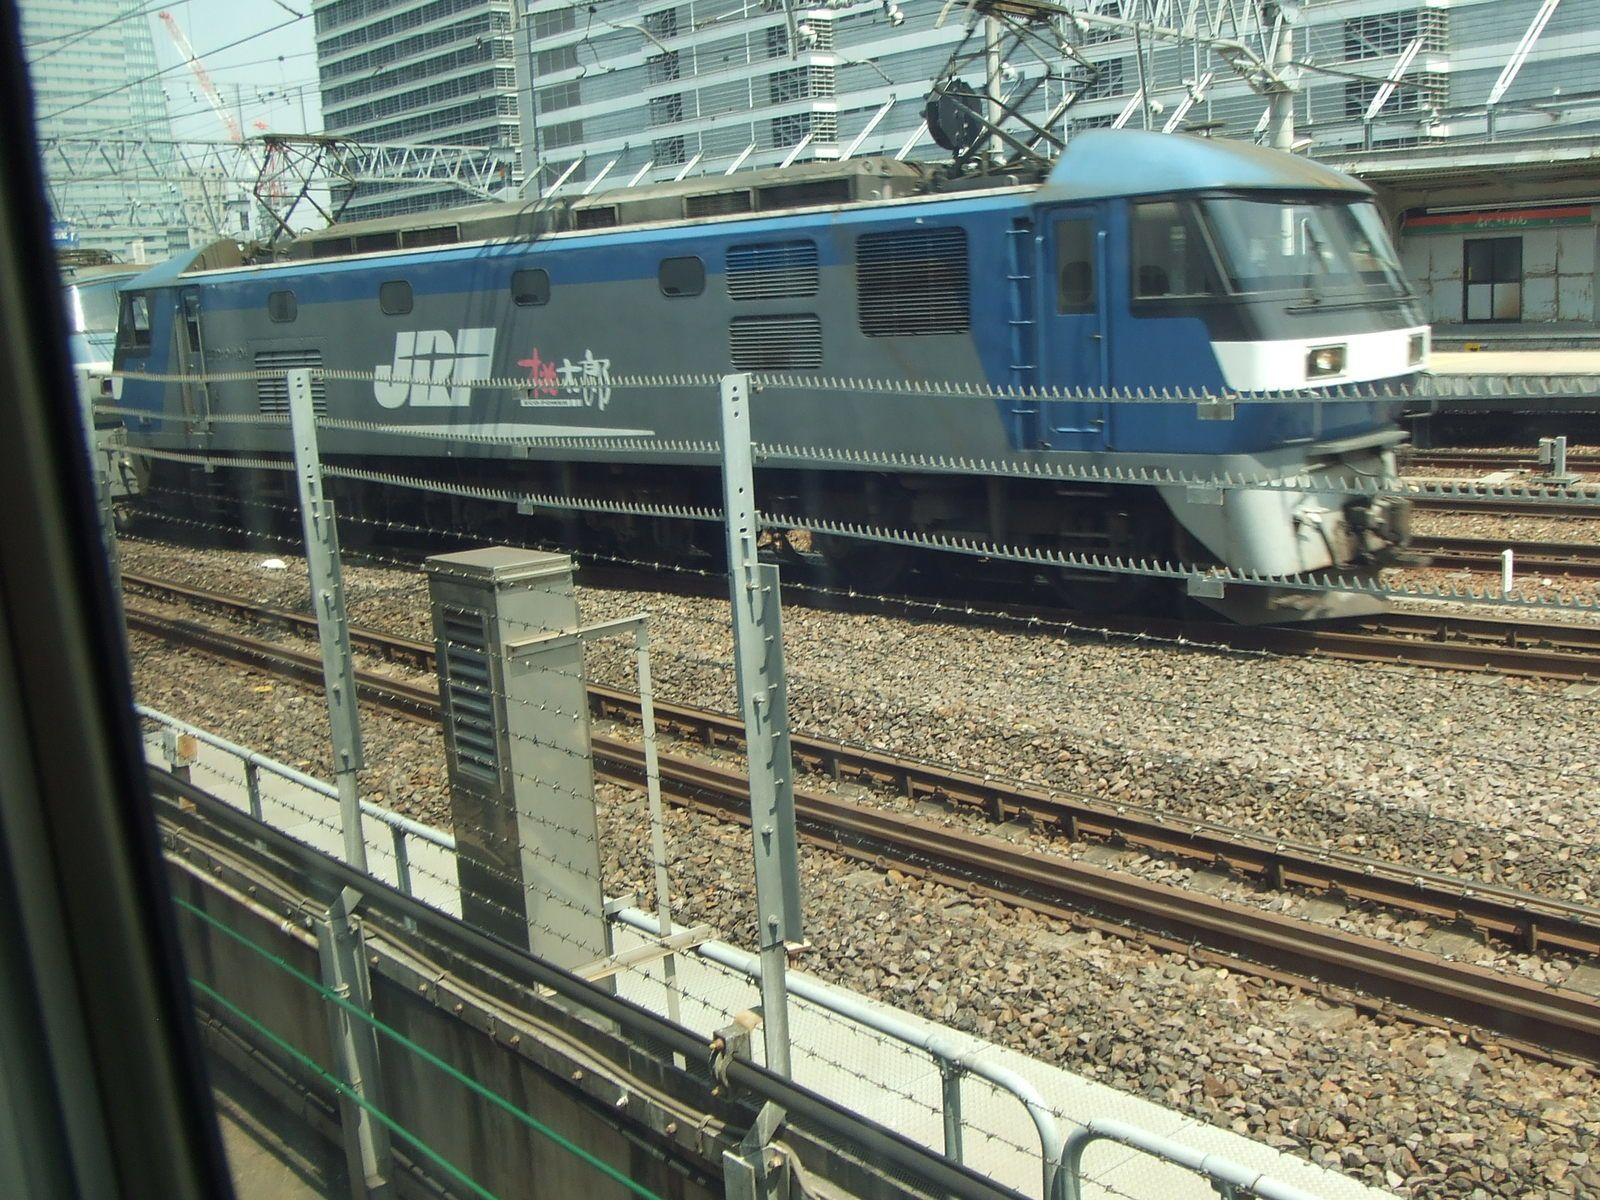 Une grosse locomotive des Japan Railways en UM, avec un train de plats à conteneurs